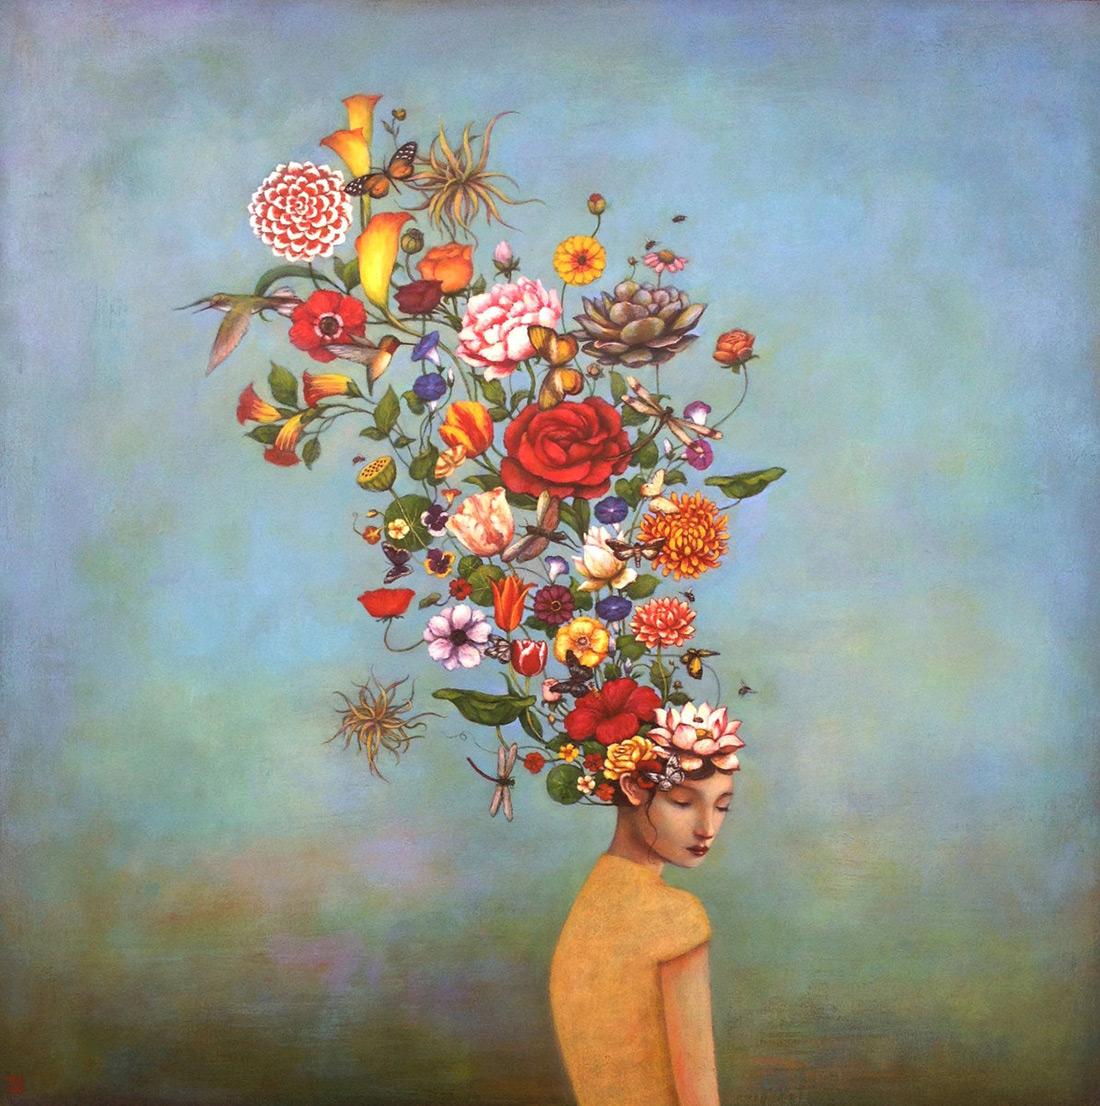 North Carolina-based painter Duy Huynh ( previously ) infuses his acrylic paintings with whimsical e